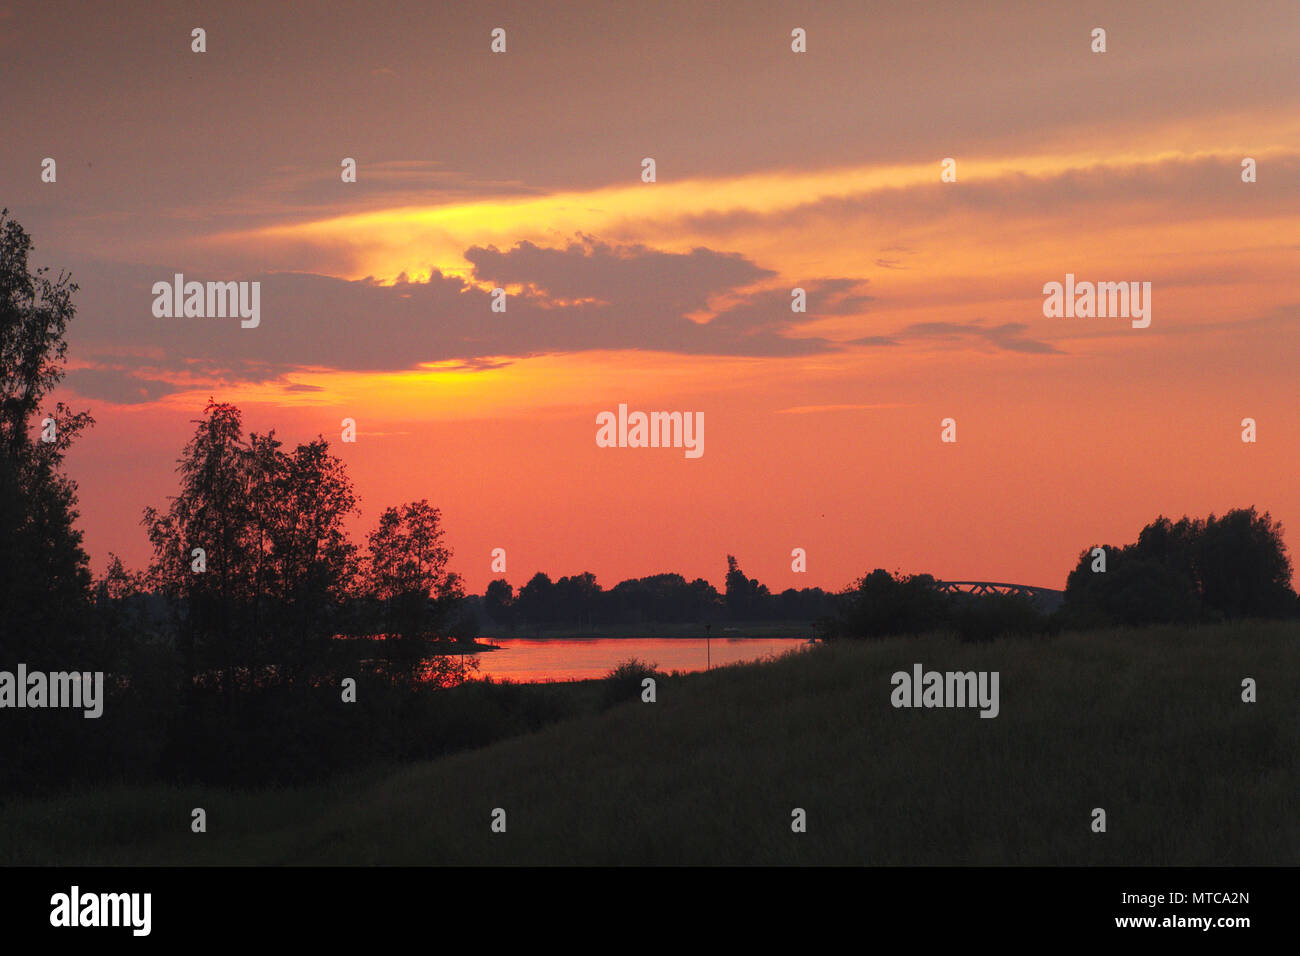 Sunset over the IJssel river near Zwolle Stock Photo